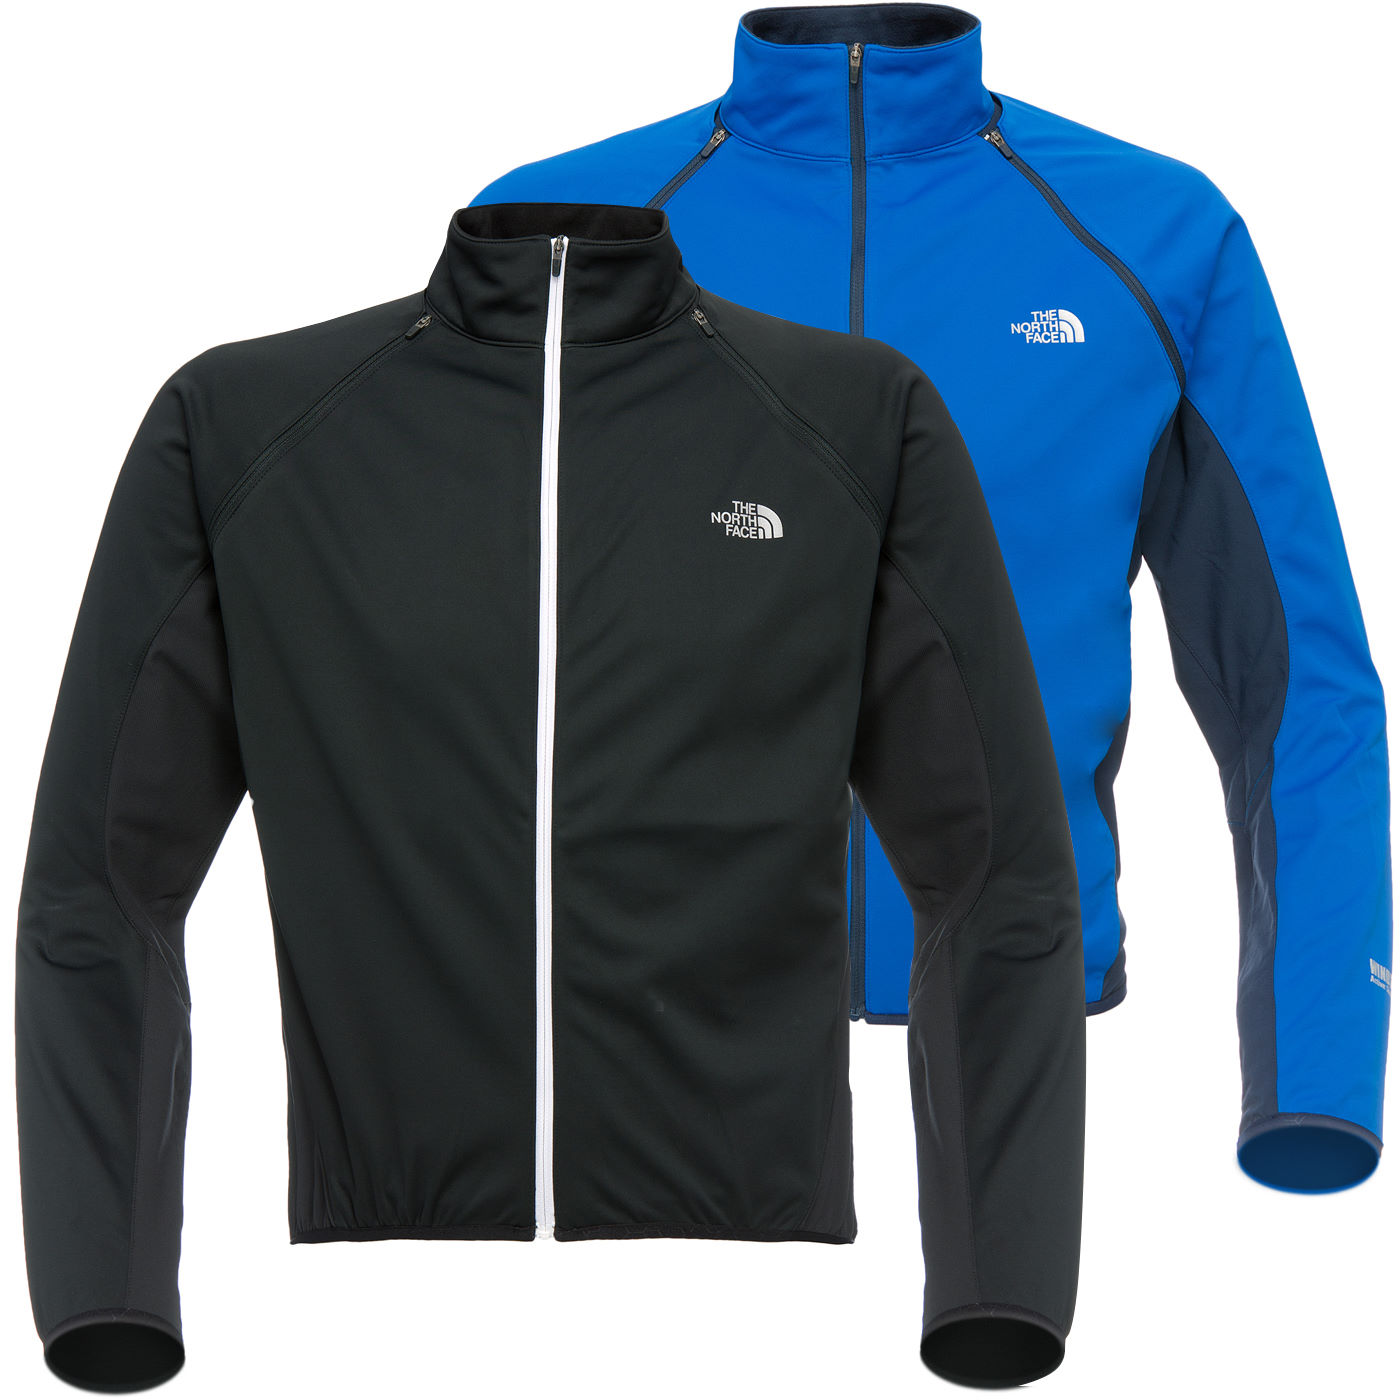 North Face Jacket Pink And Gray Northface Discount North Face Jacket Norway